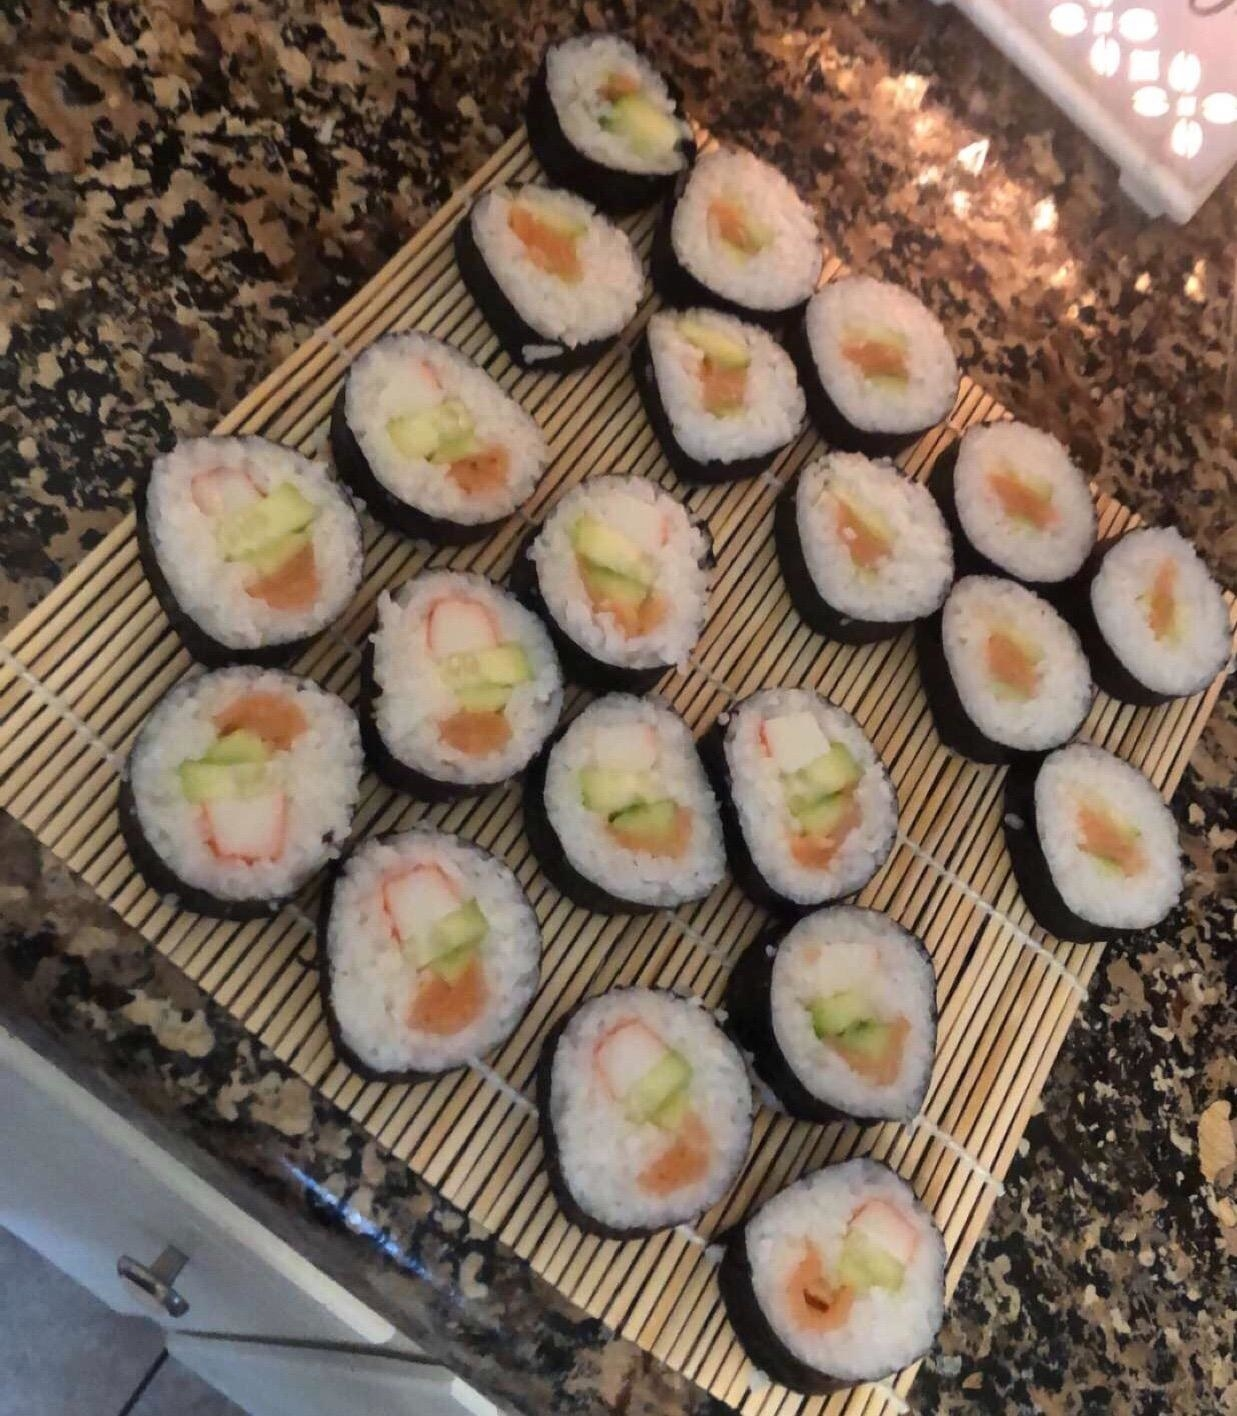 Reviewer photo of the professional-looking sushi they made